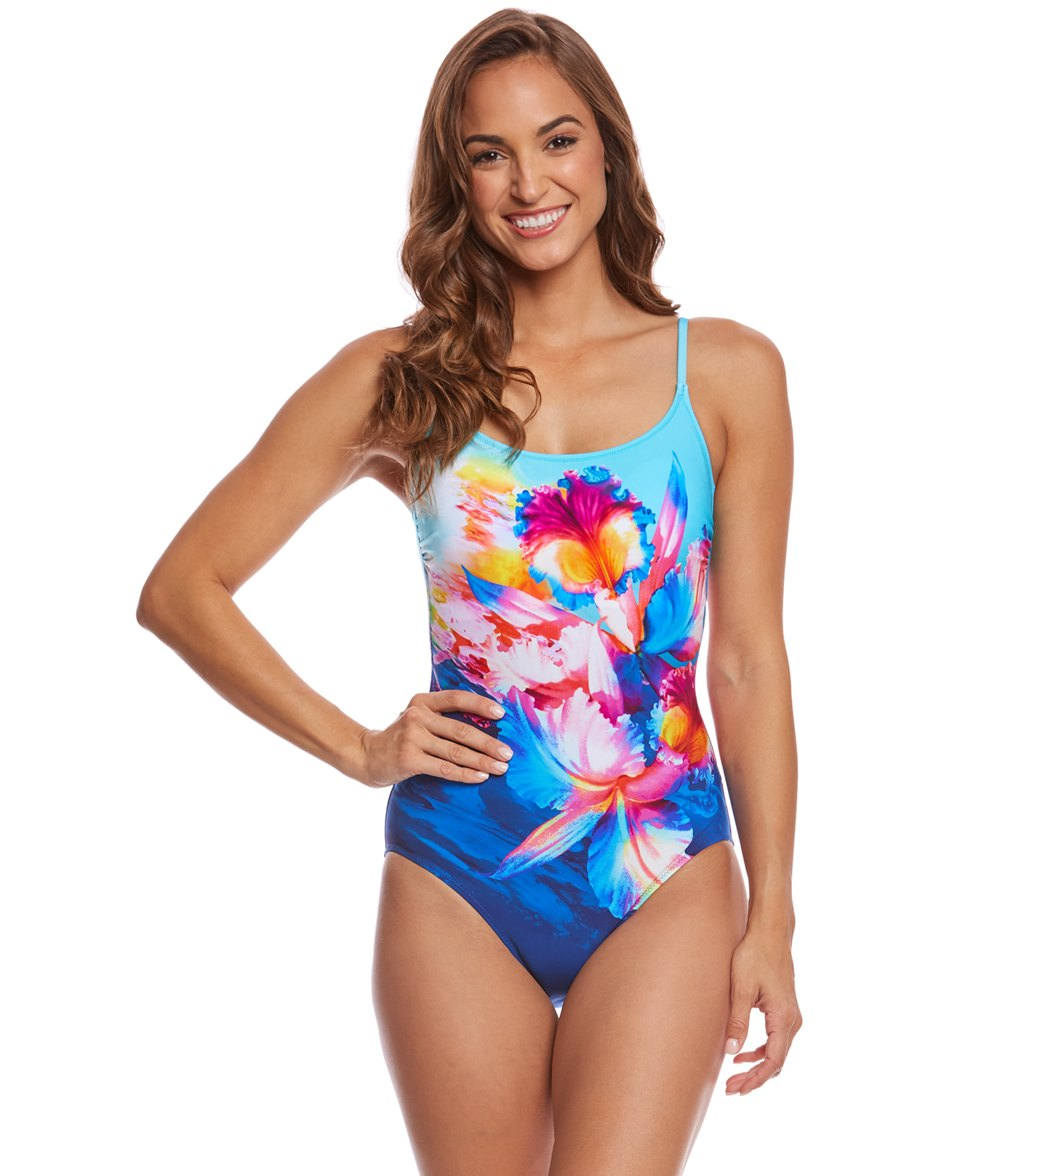 f9470e3c291 Gottex Hawaii Round Neck One Piece Swimsuit at SwimOutlet.com - Free  Shipping